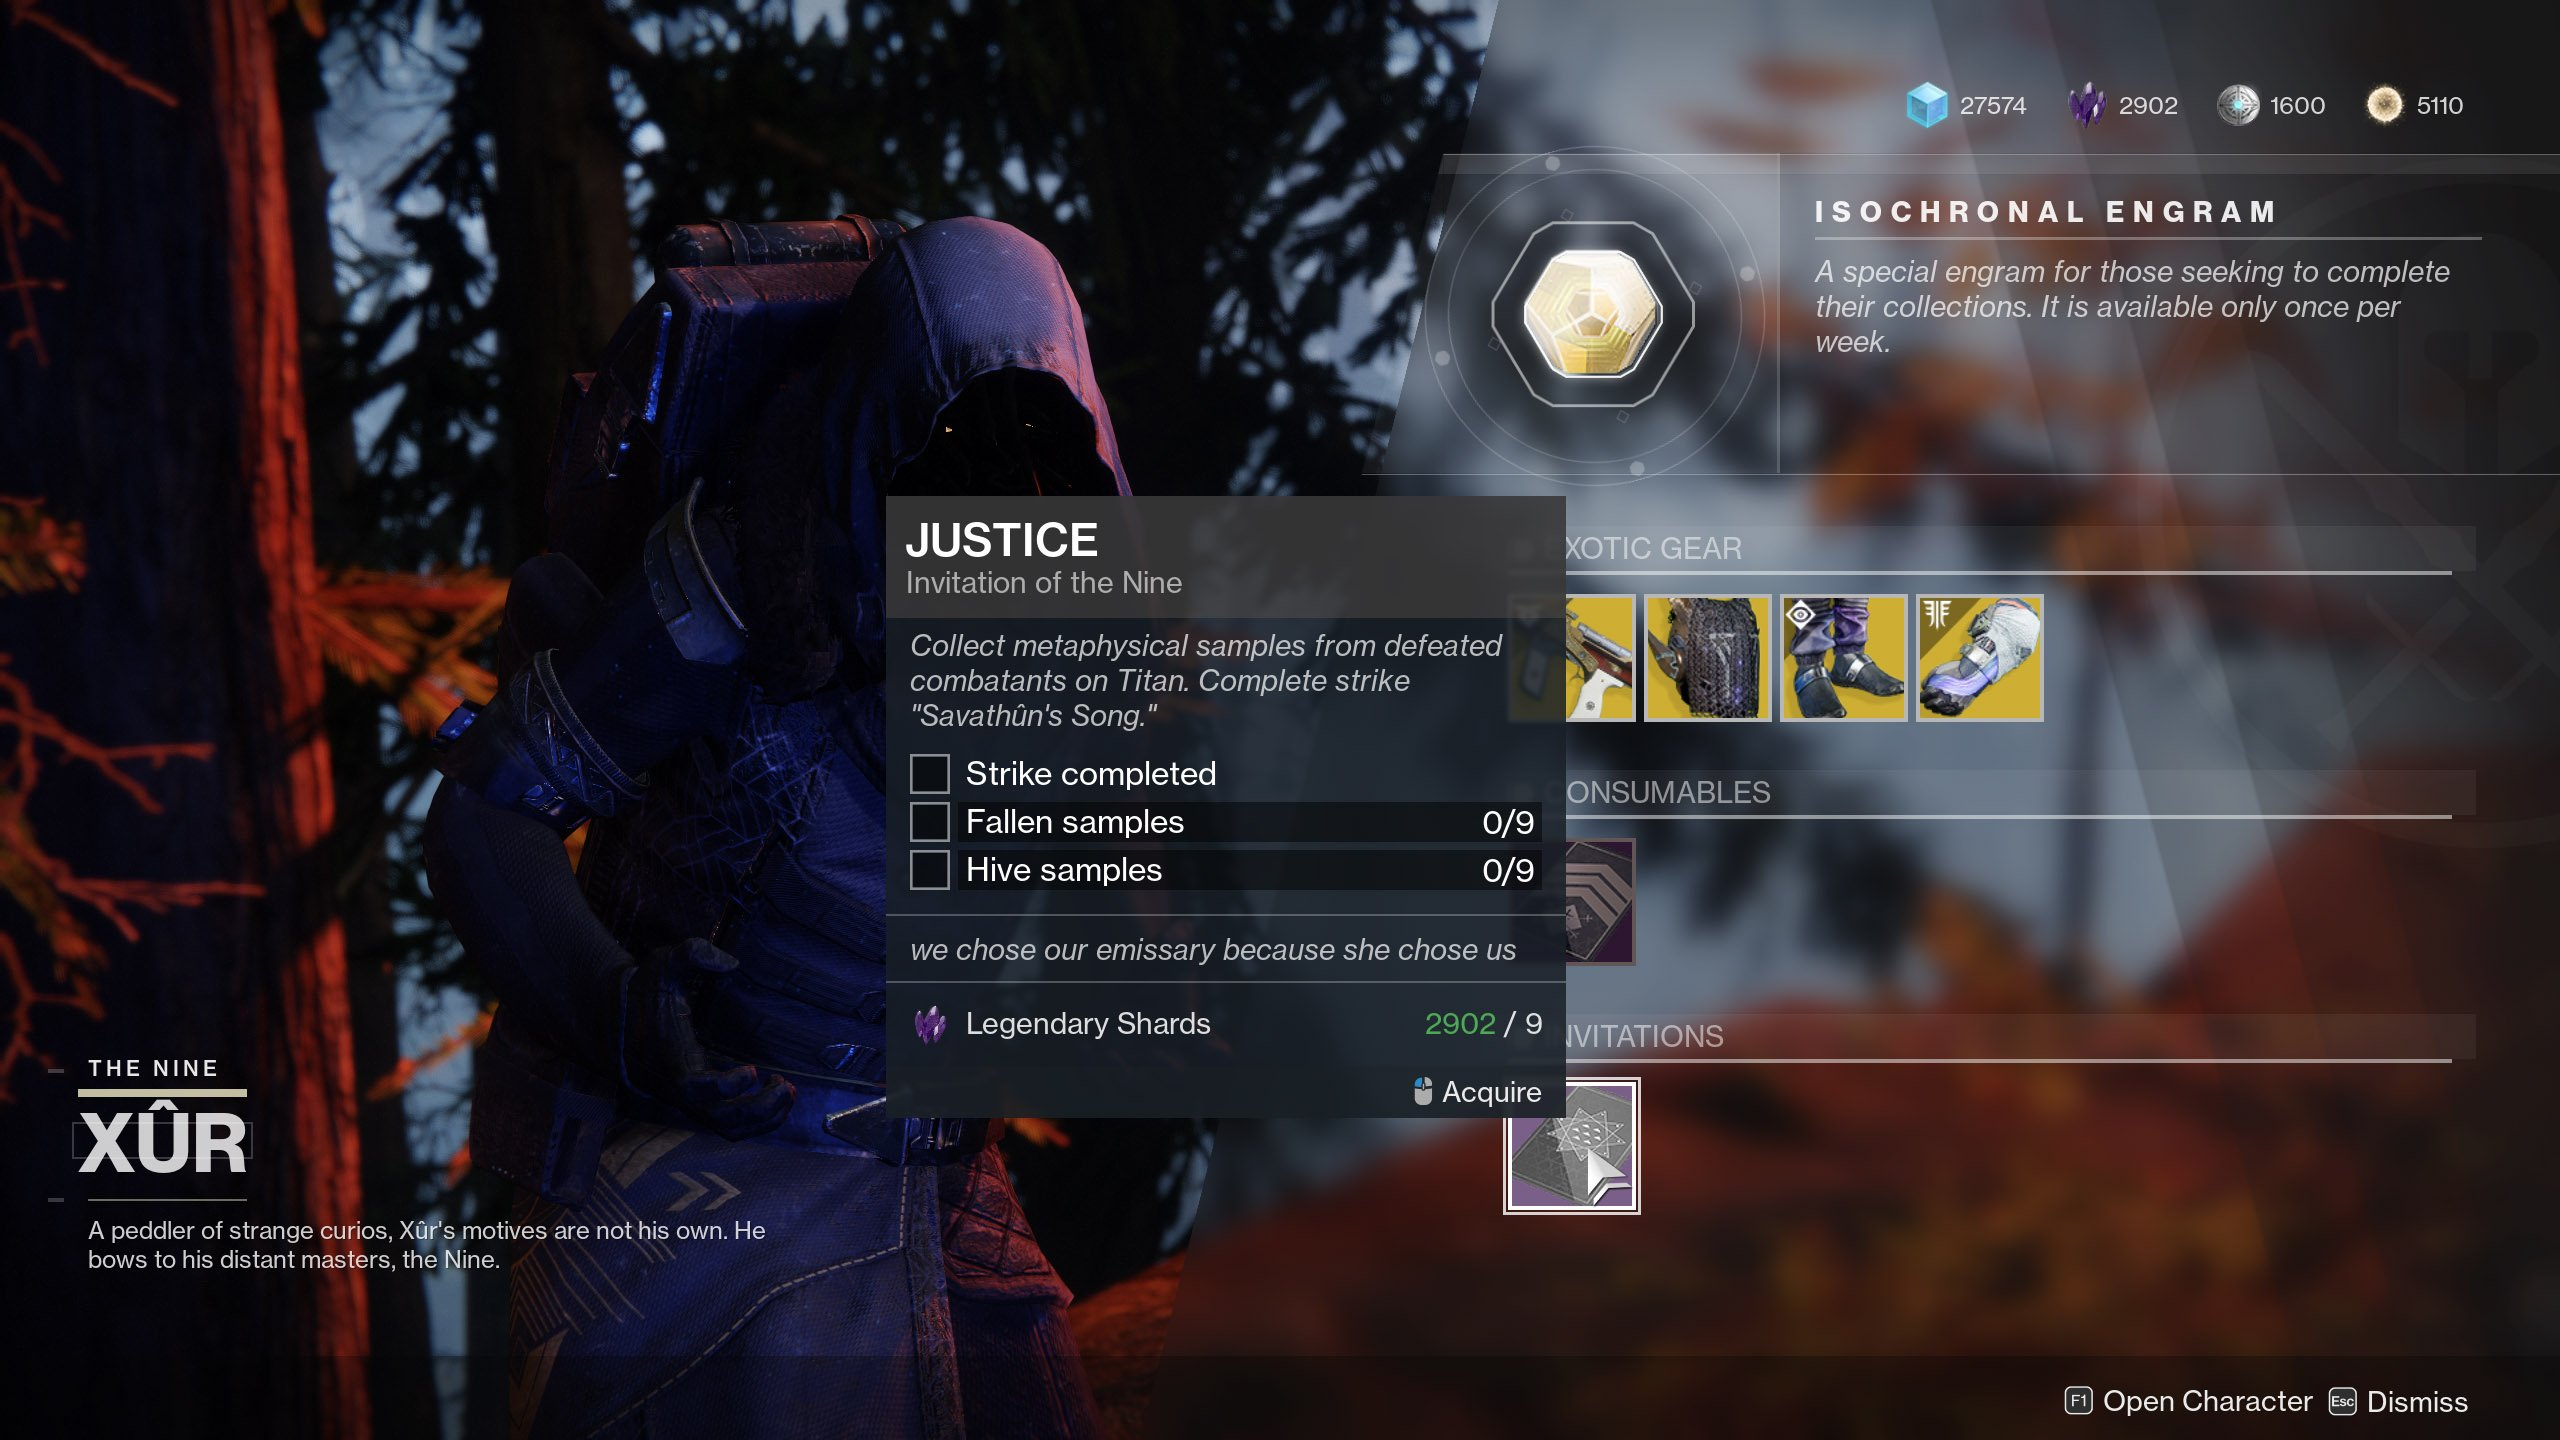 Justice Invitation of the Nine Destiny 2